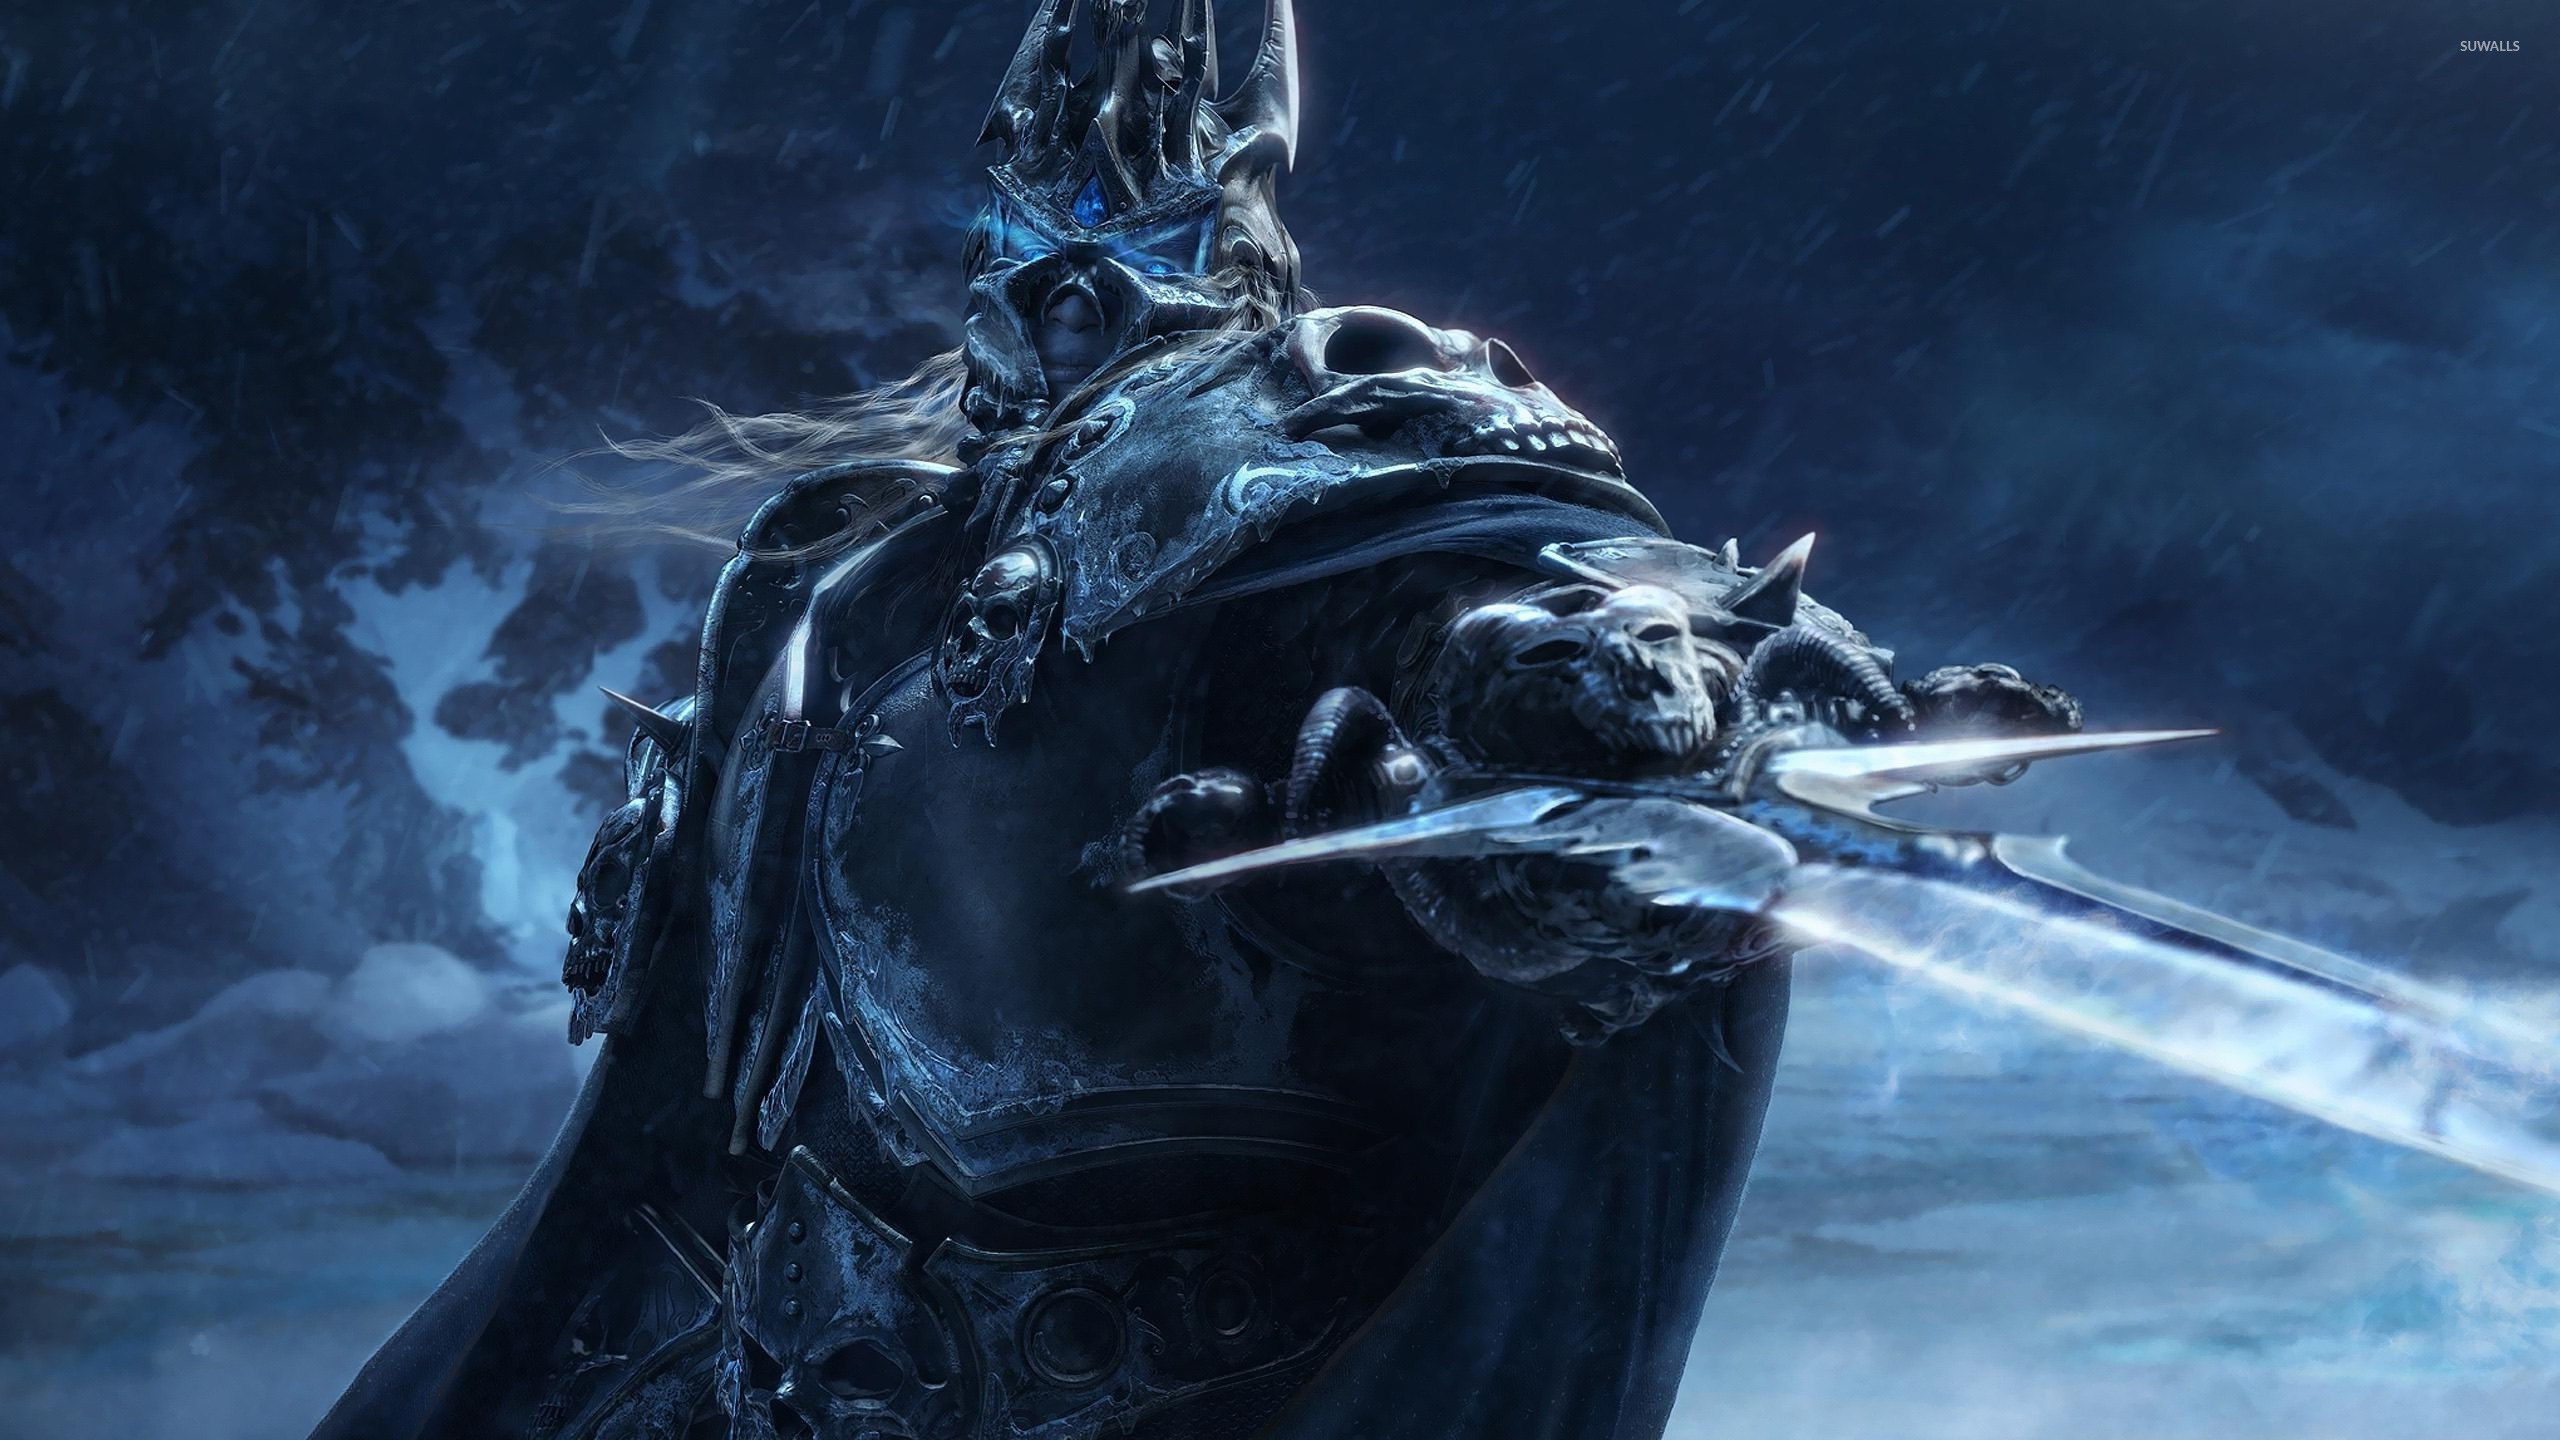 World of Warcraft: Wrath of the Lich King wallpaper - Game